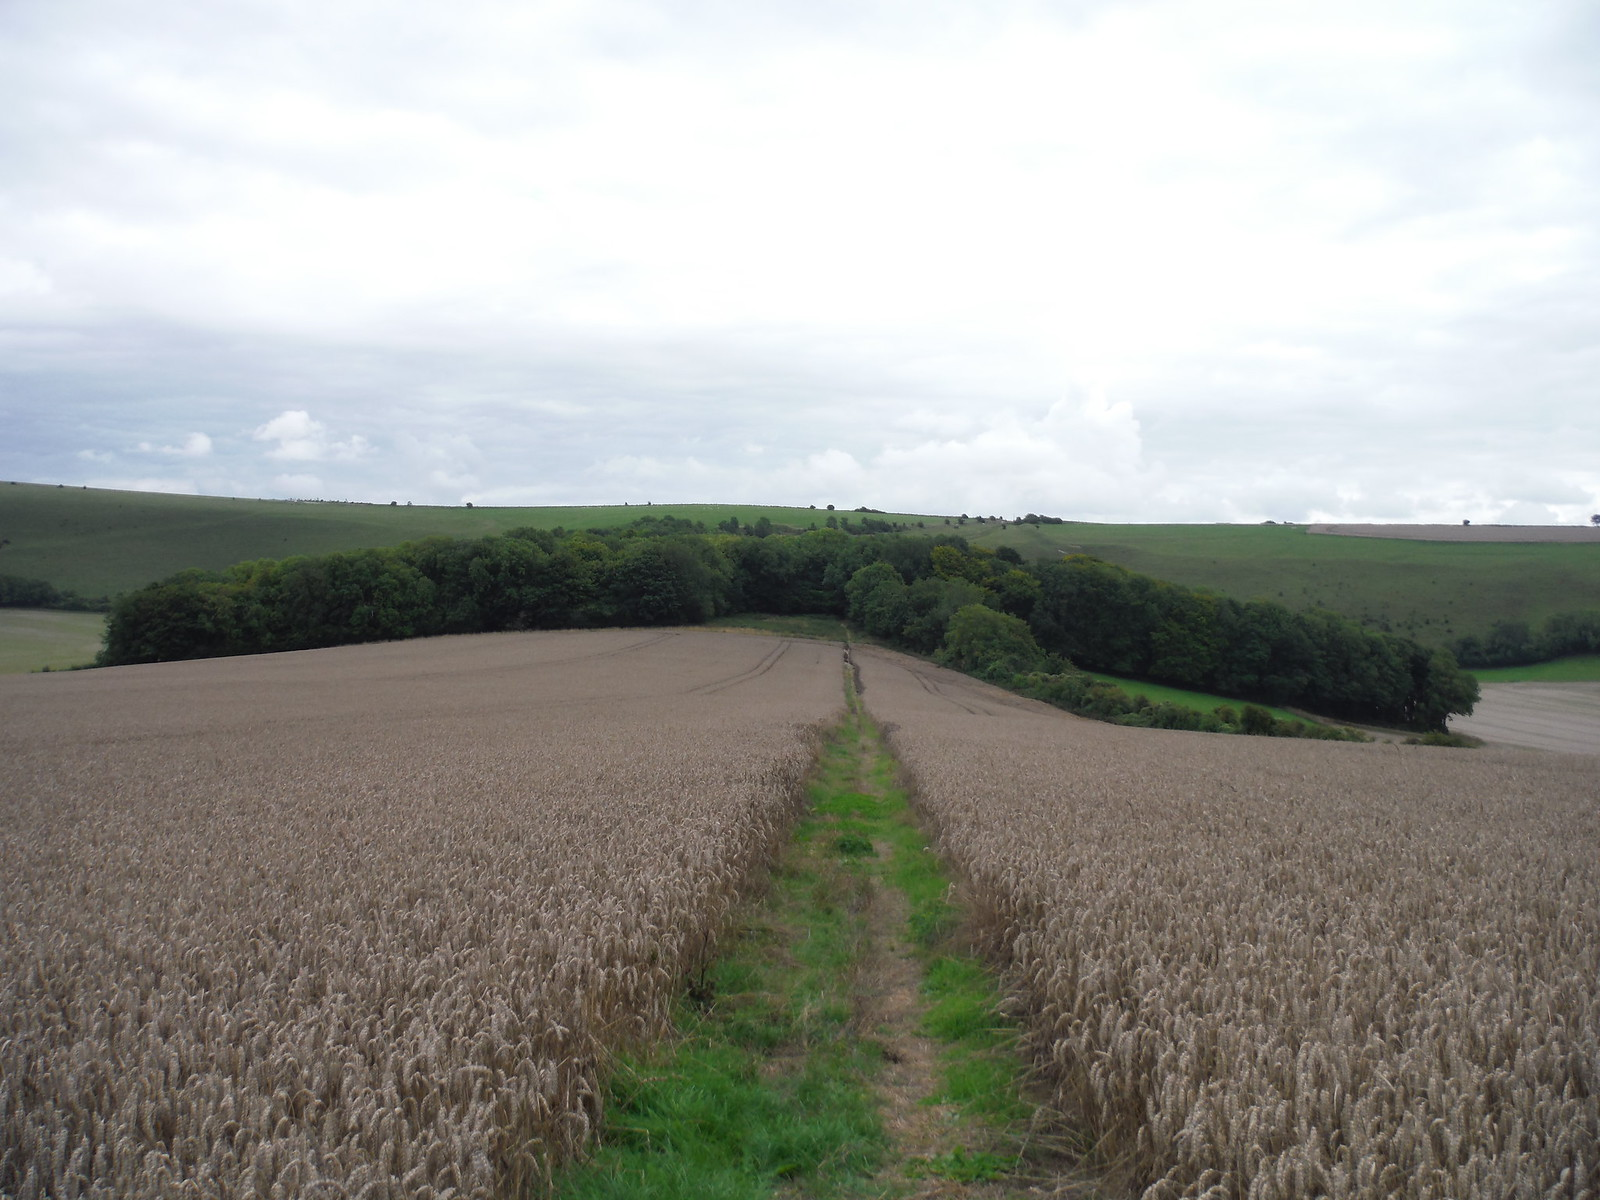 Towards Picket's Close/Elliot's Shed Woods SWC Walk 251 Tisbury Circular via Ludwell and Berwick St. John